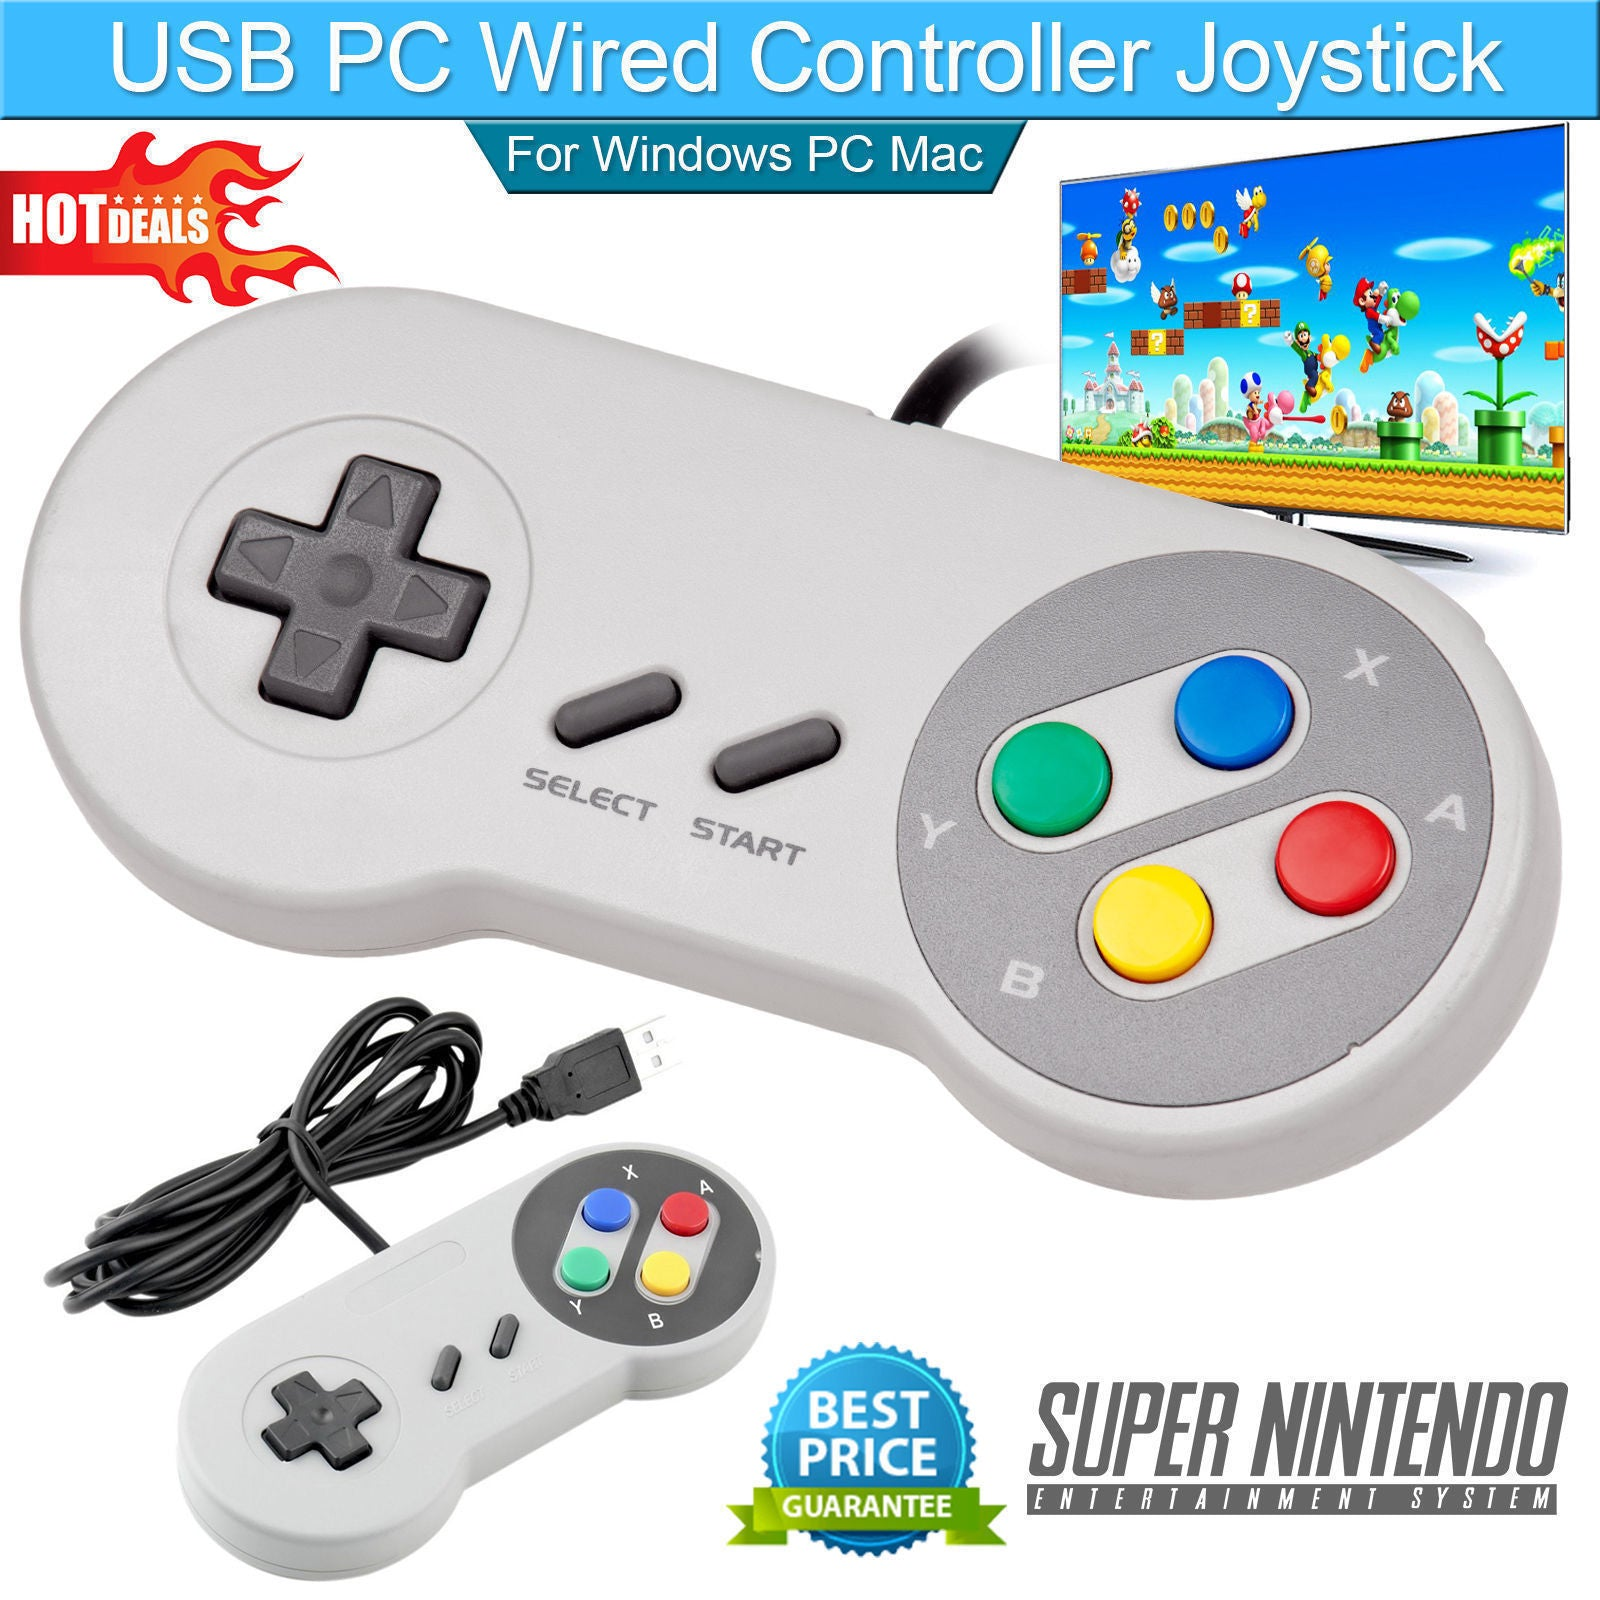 SNES Controller Gamepad USB For PC Mac Pi Super Nintendo Games Retro Classic USA